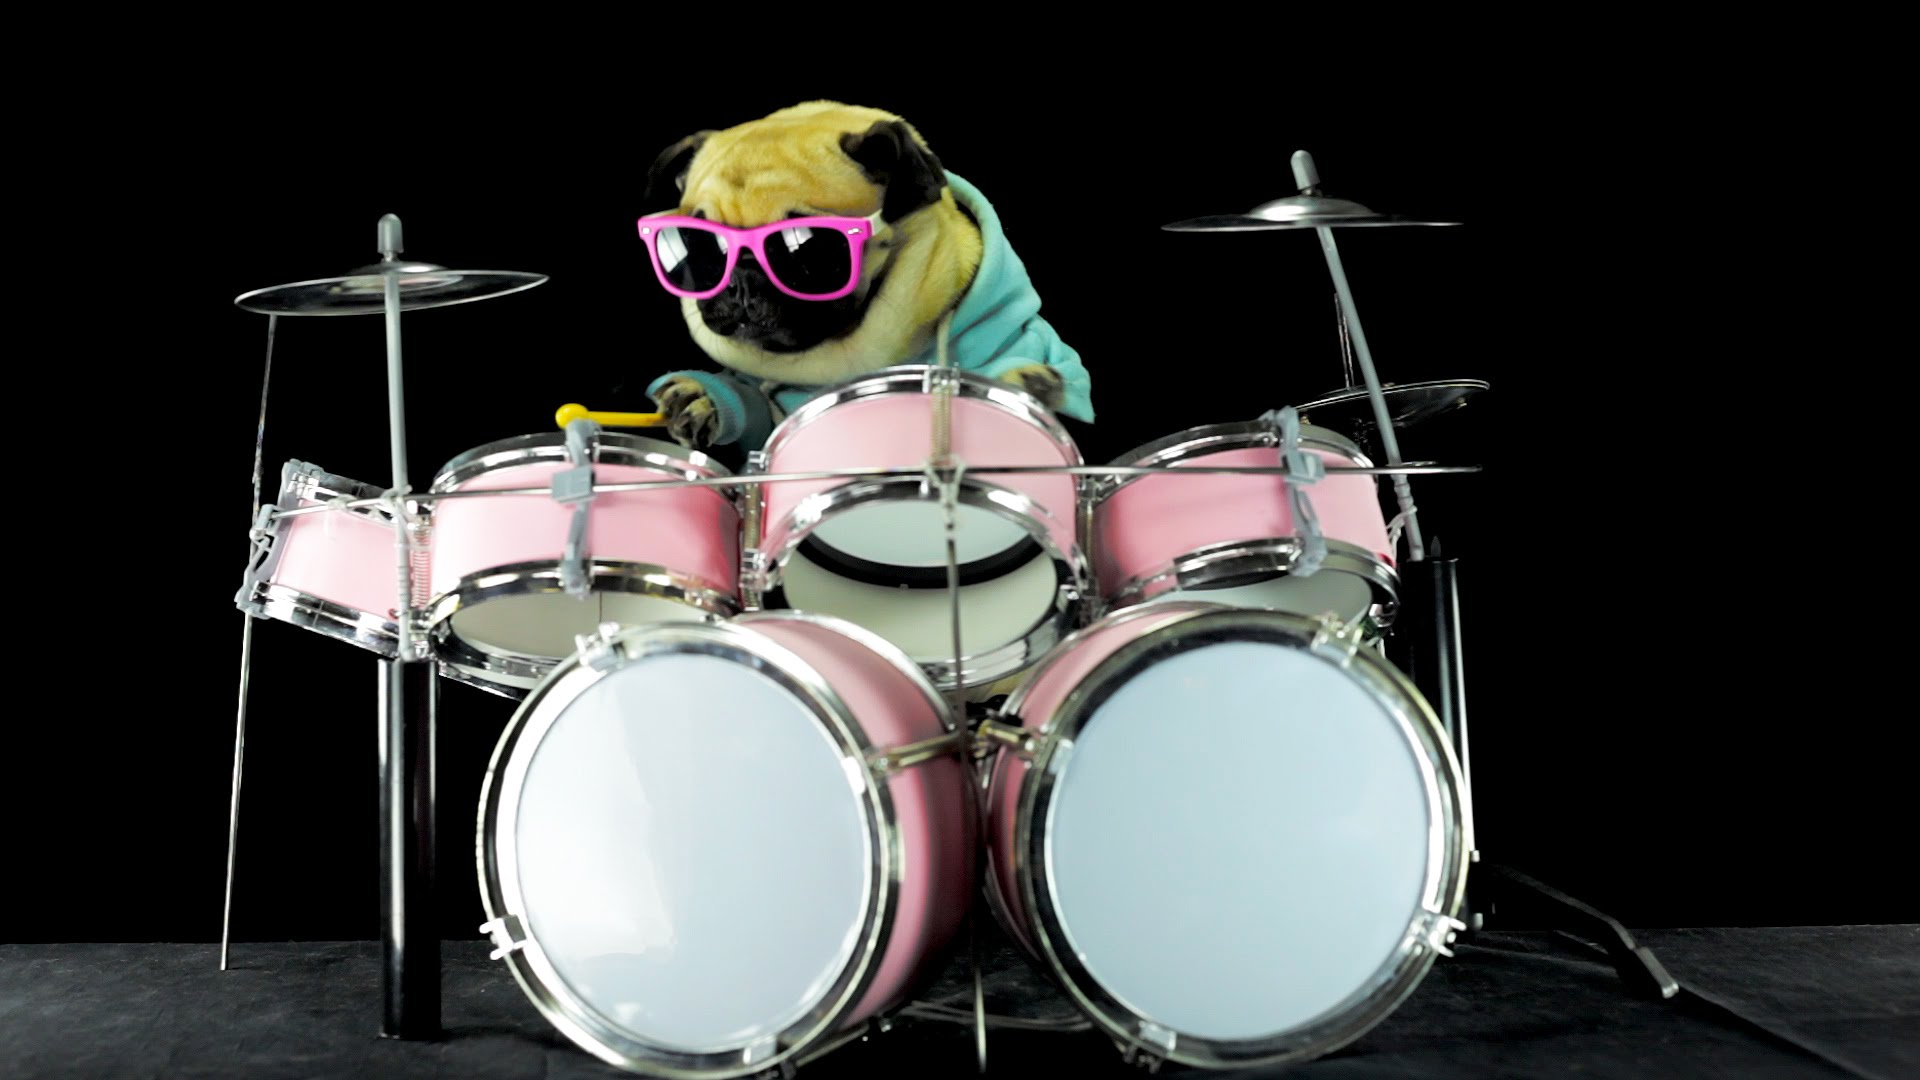 Pug Rocks Out Drum To Metallica Song u0026quot;Enter Sandmanu0026quot;. Itu0026#39;s Too Epic For Words... - PawBuzz